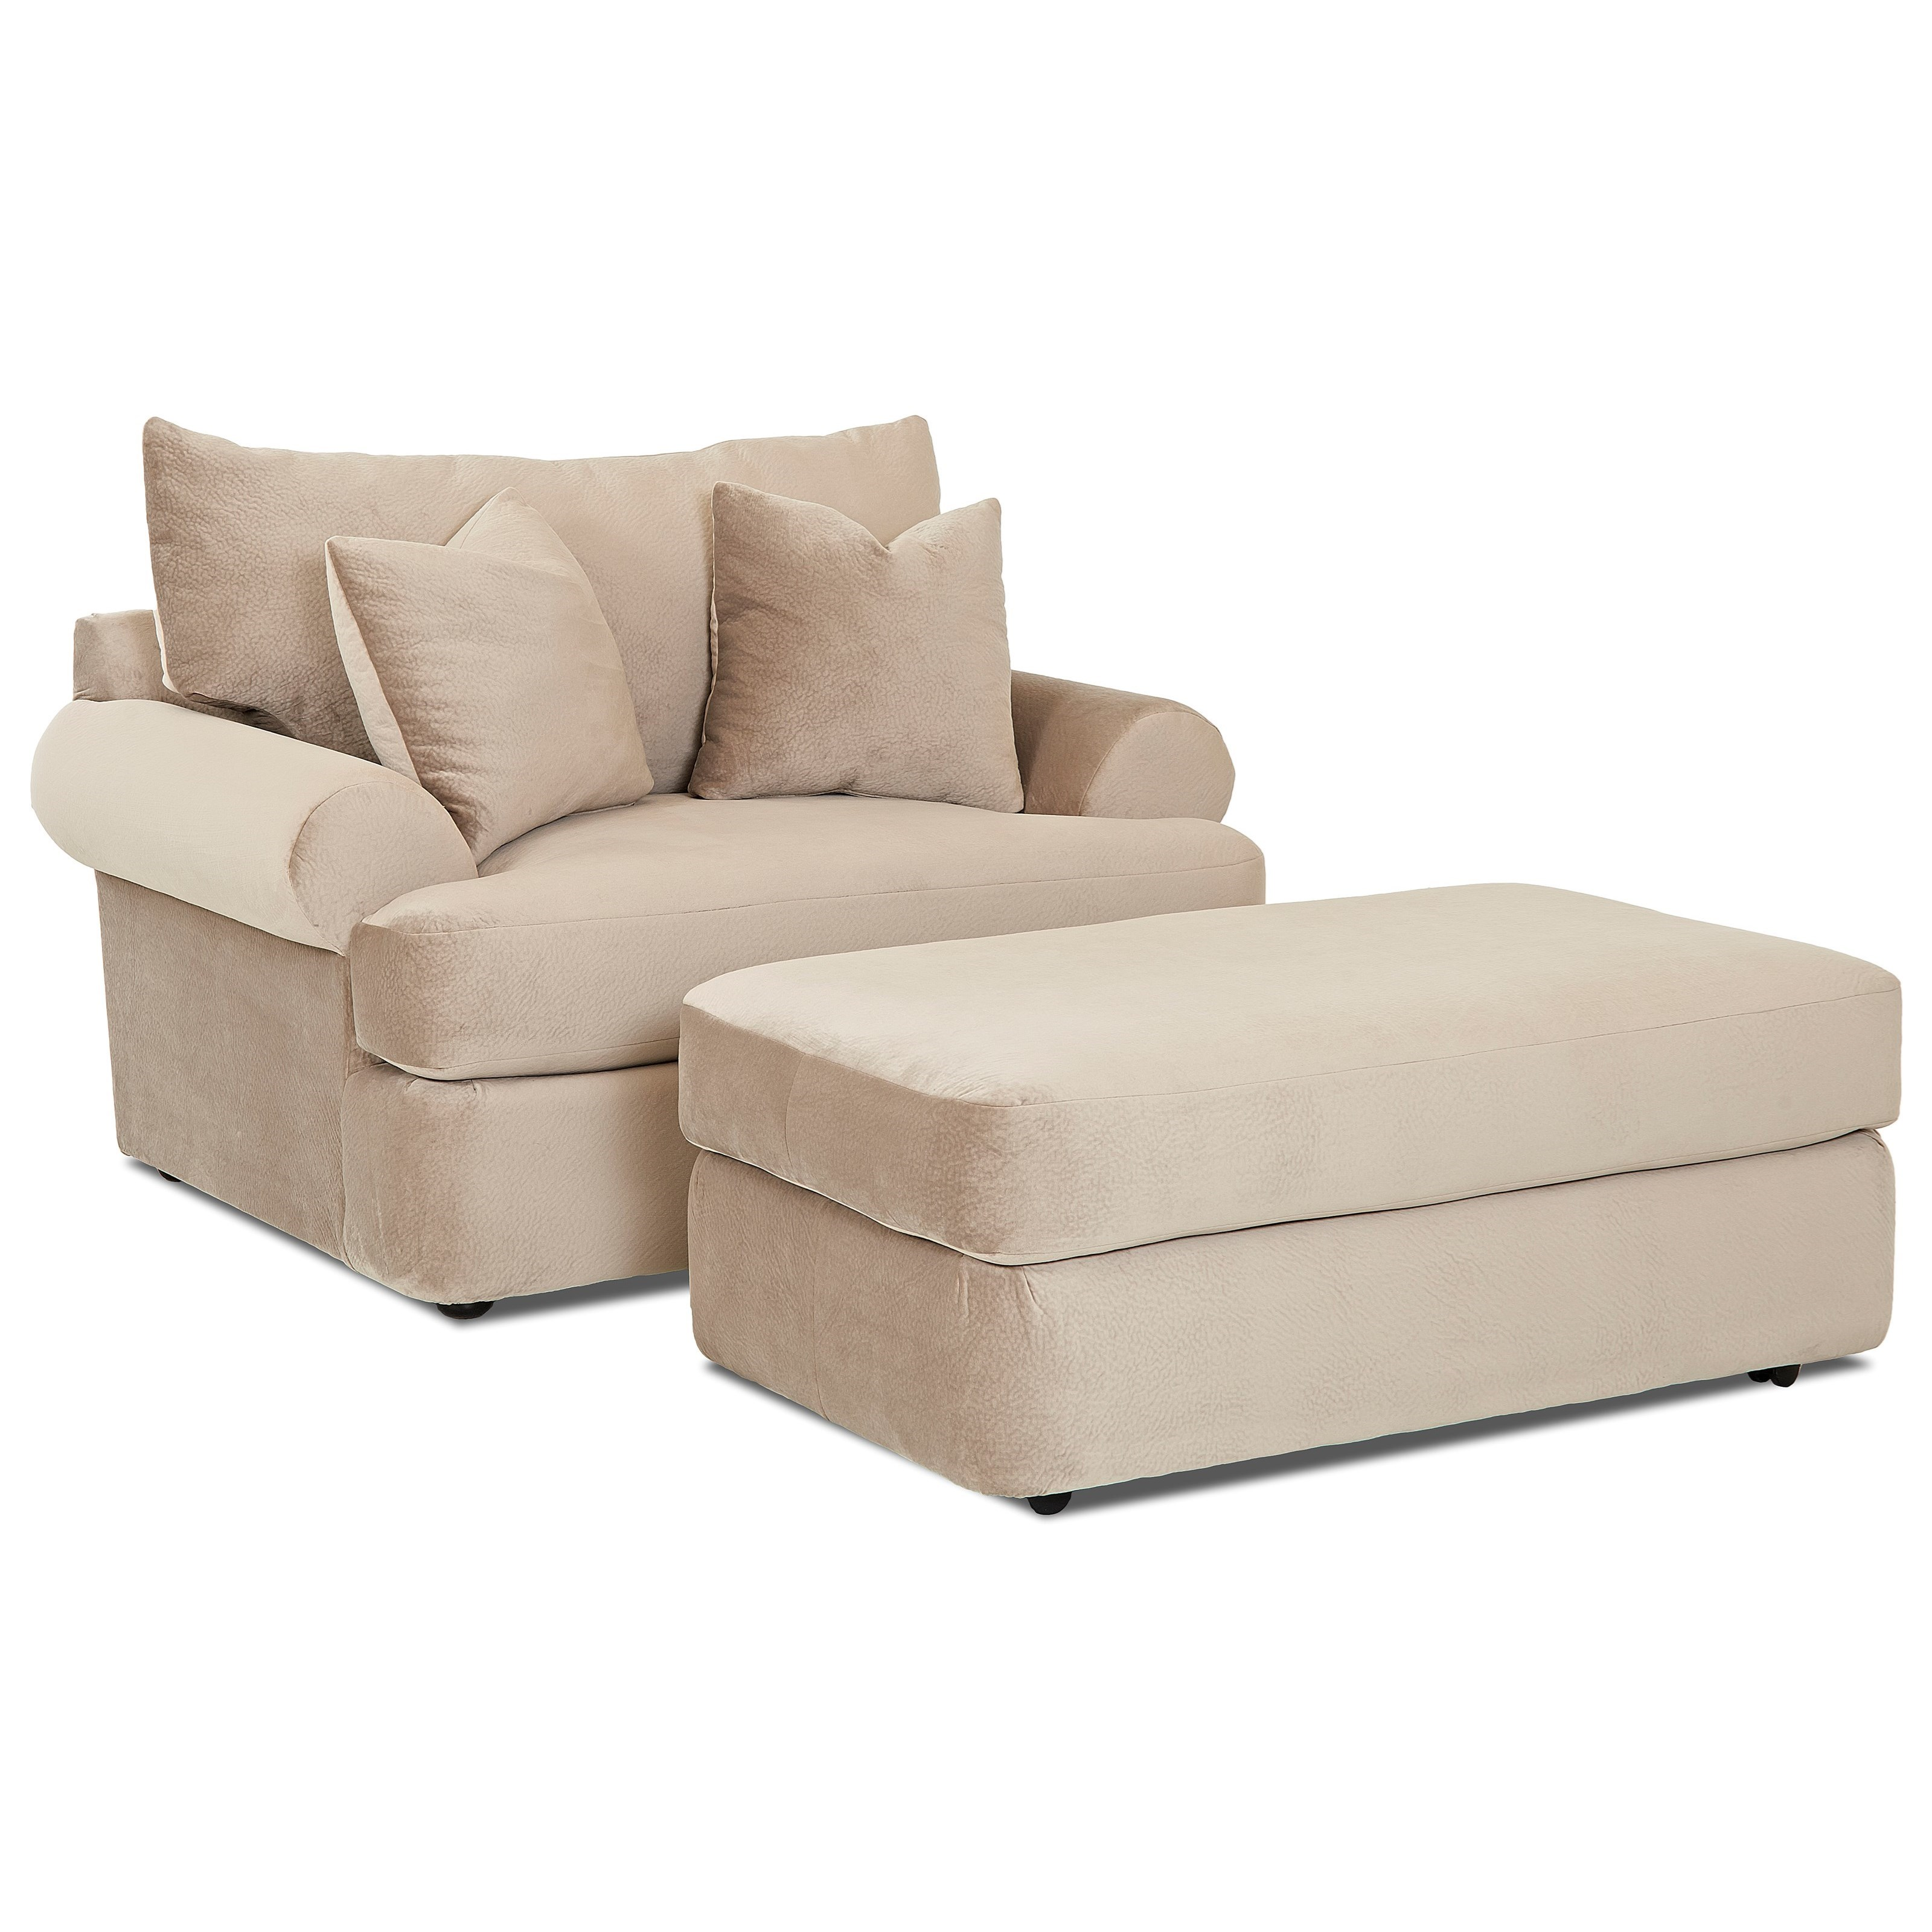 Cora Big Chair and Ottoman Set by Klaussner at Northeast Factory Direct